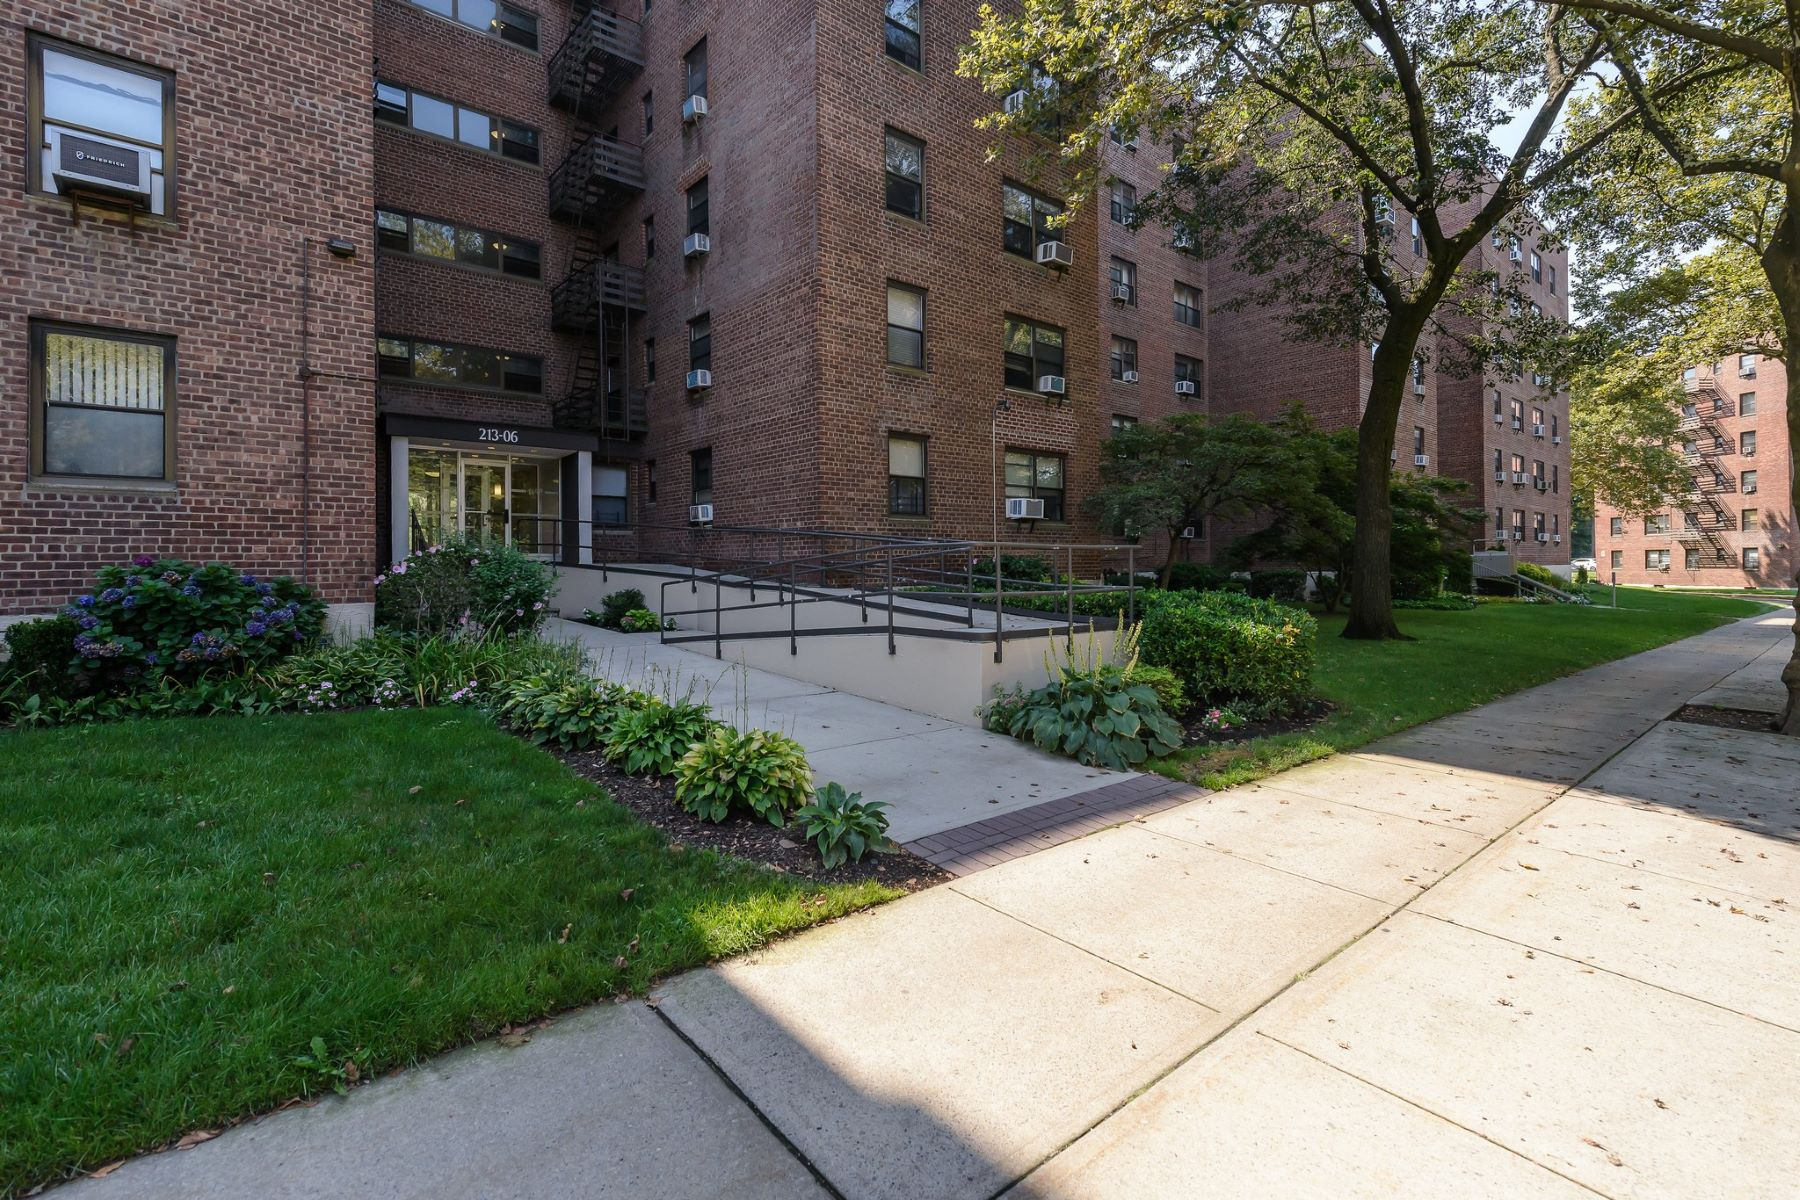 Co-op for Sale at 213-06 75th Avenue, 3-O, Bayside, NY 11364 213-06 75th Ave 3-O Bayside, New York 11364 United States